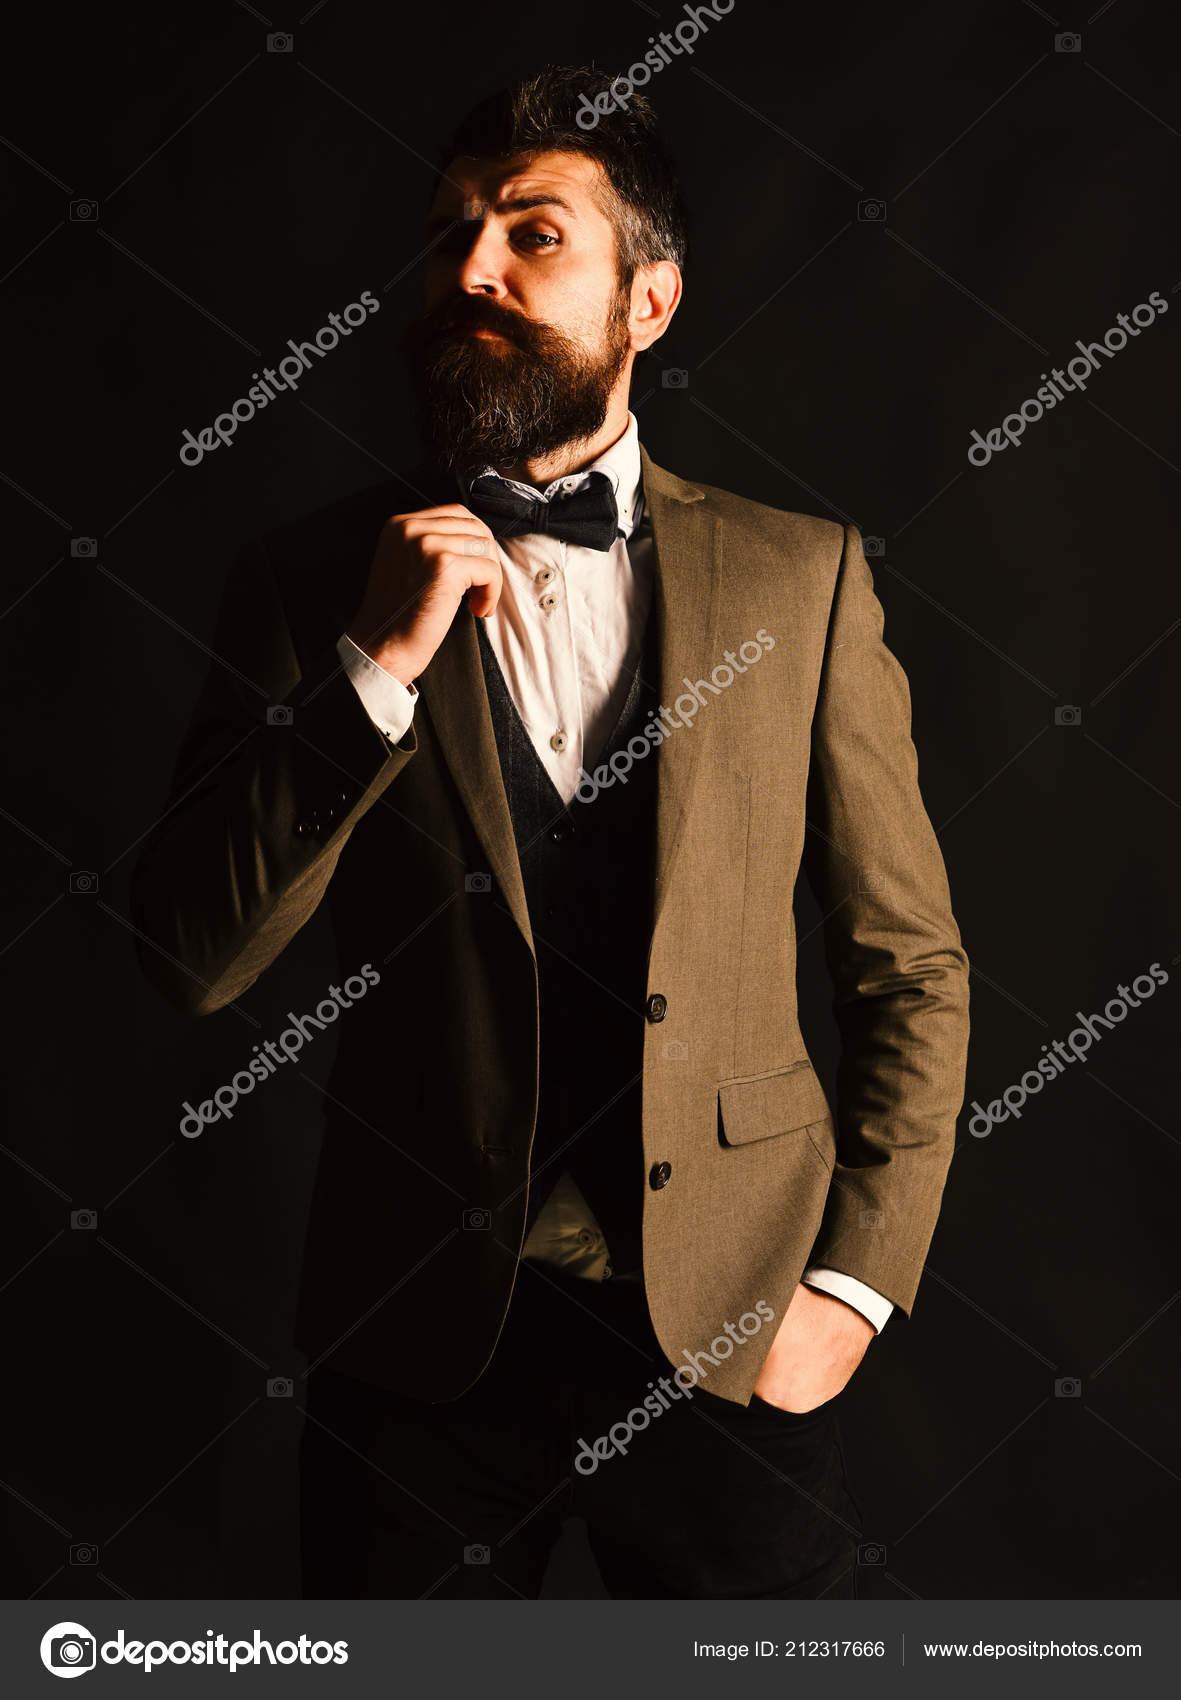 9f27a21c49b9 Manager or speaker with stylish beard and moustache. Businessman with  surprised face adjusts bow tie. Business and vintage style concept. Man in  retro smart ...